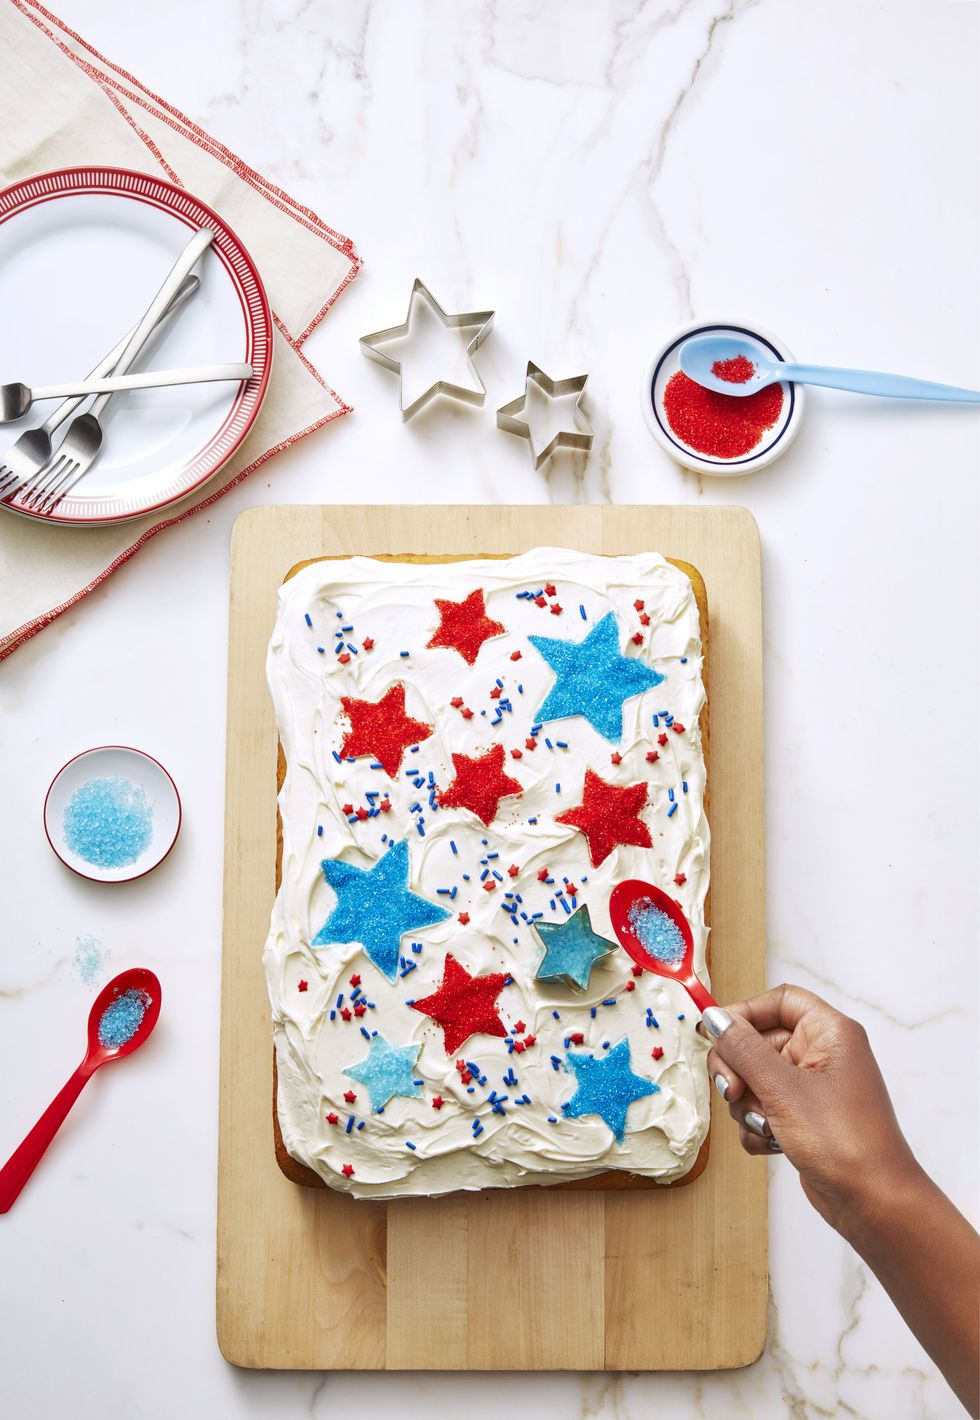 27 All-American 4th of July Cake Ideas For A Star-Spangled Celebration